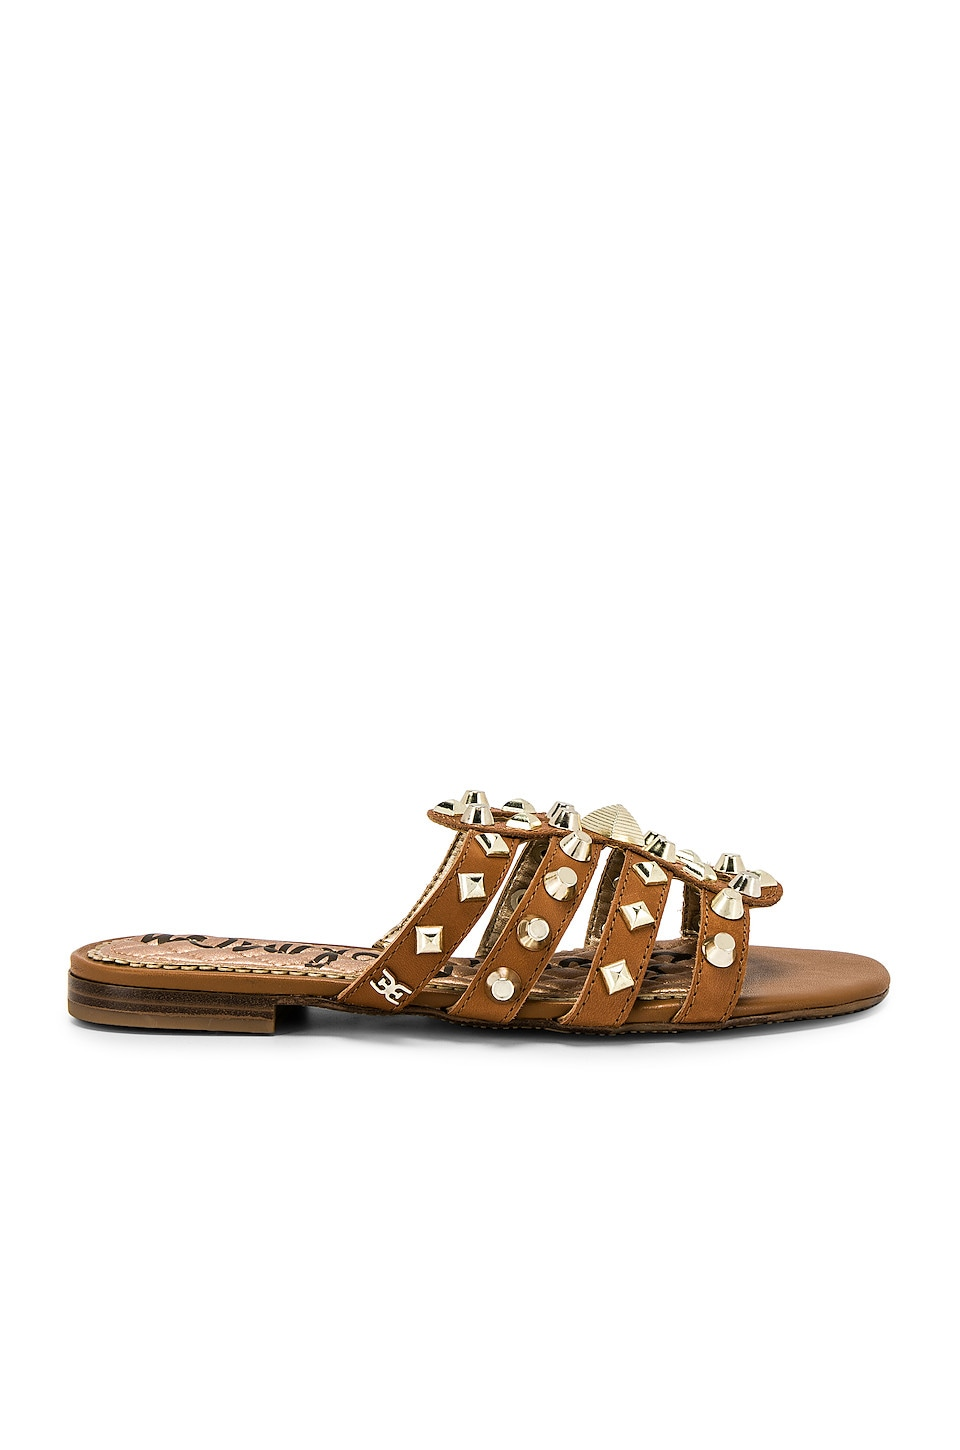 Sam Edelman Beatris Sandal in Saddle